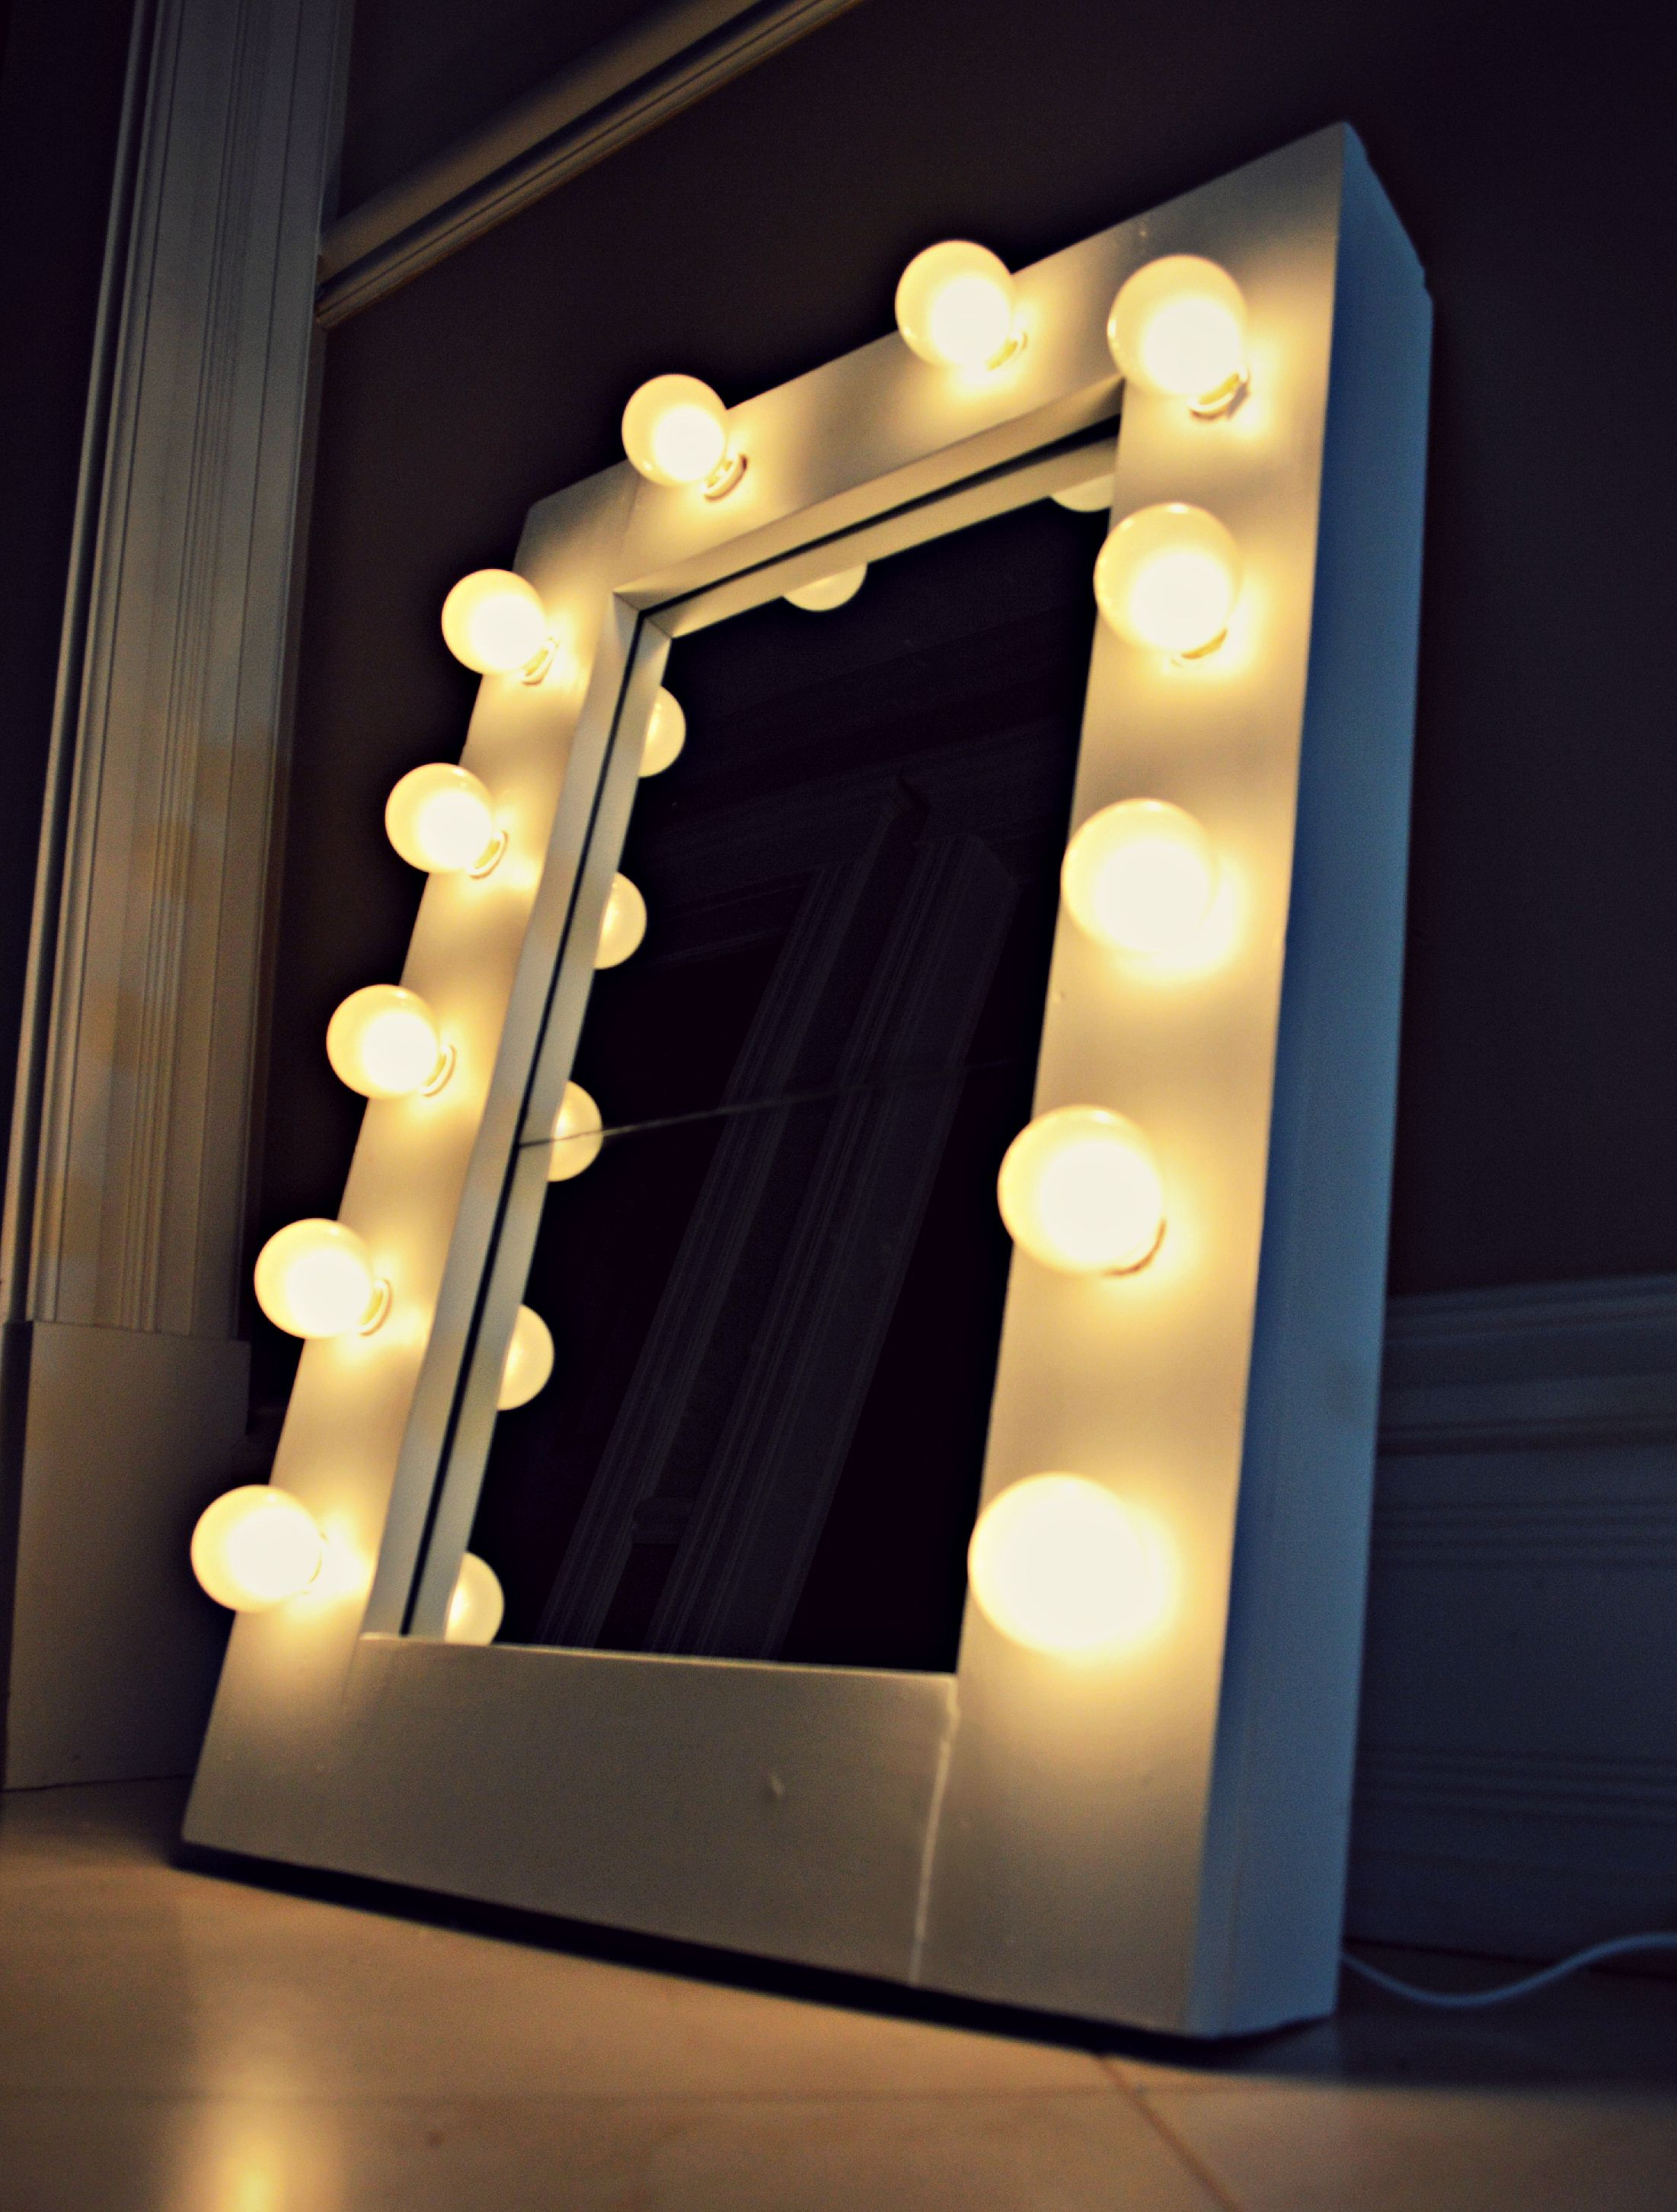 DIY Vanity Mirror  Under $100. Materials: Pine Planks, White Paint (spray  Paint, Wall Paint, Or Acrylic), Lacquer Finish Paint, String Of Globe  Lights ... Home Design Ideas